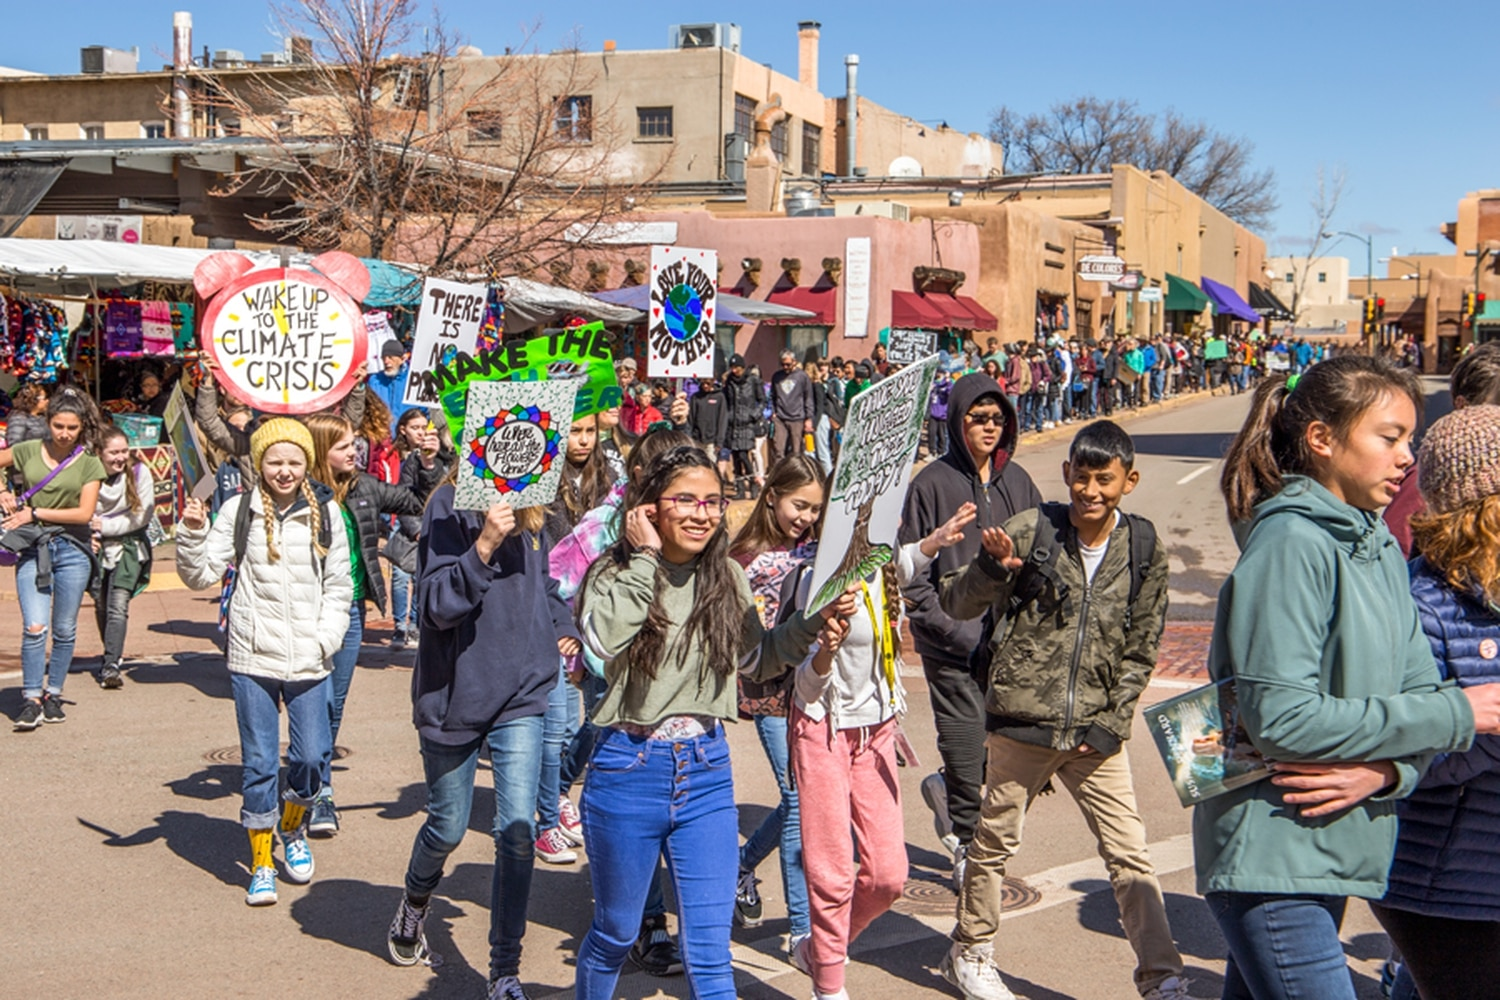 Students from Santa Fe marched from the Plaza to the Roundhouse on March 15 to be a part of the youth Global Climate Strike.